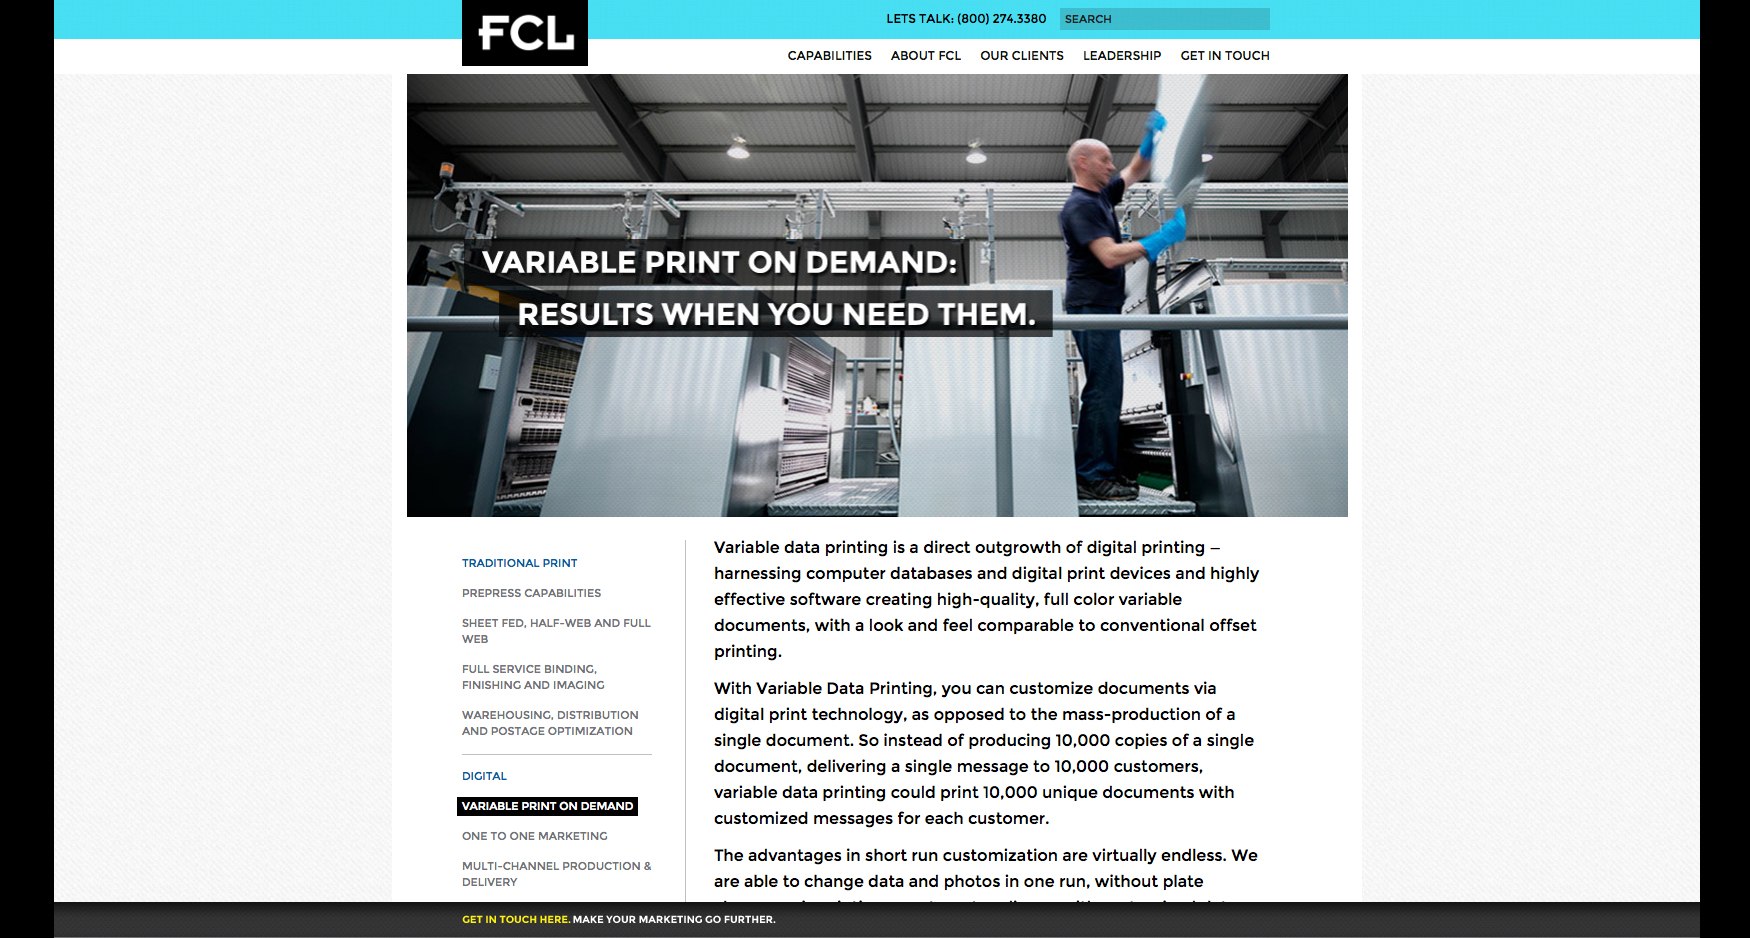 6 FCL Variable Print - FCL GRAPHICS - CORPORATE WEBSITE